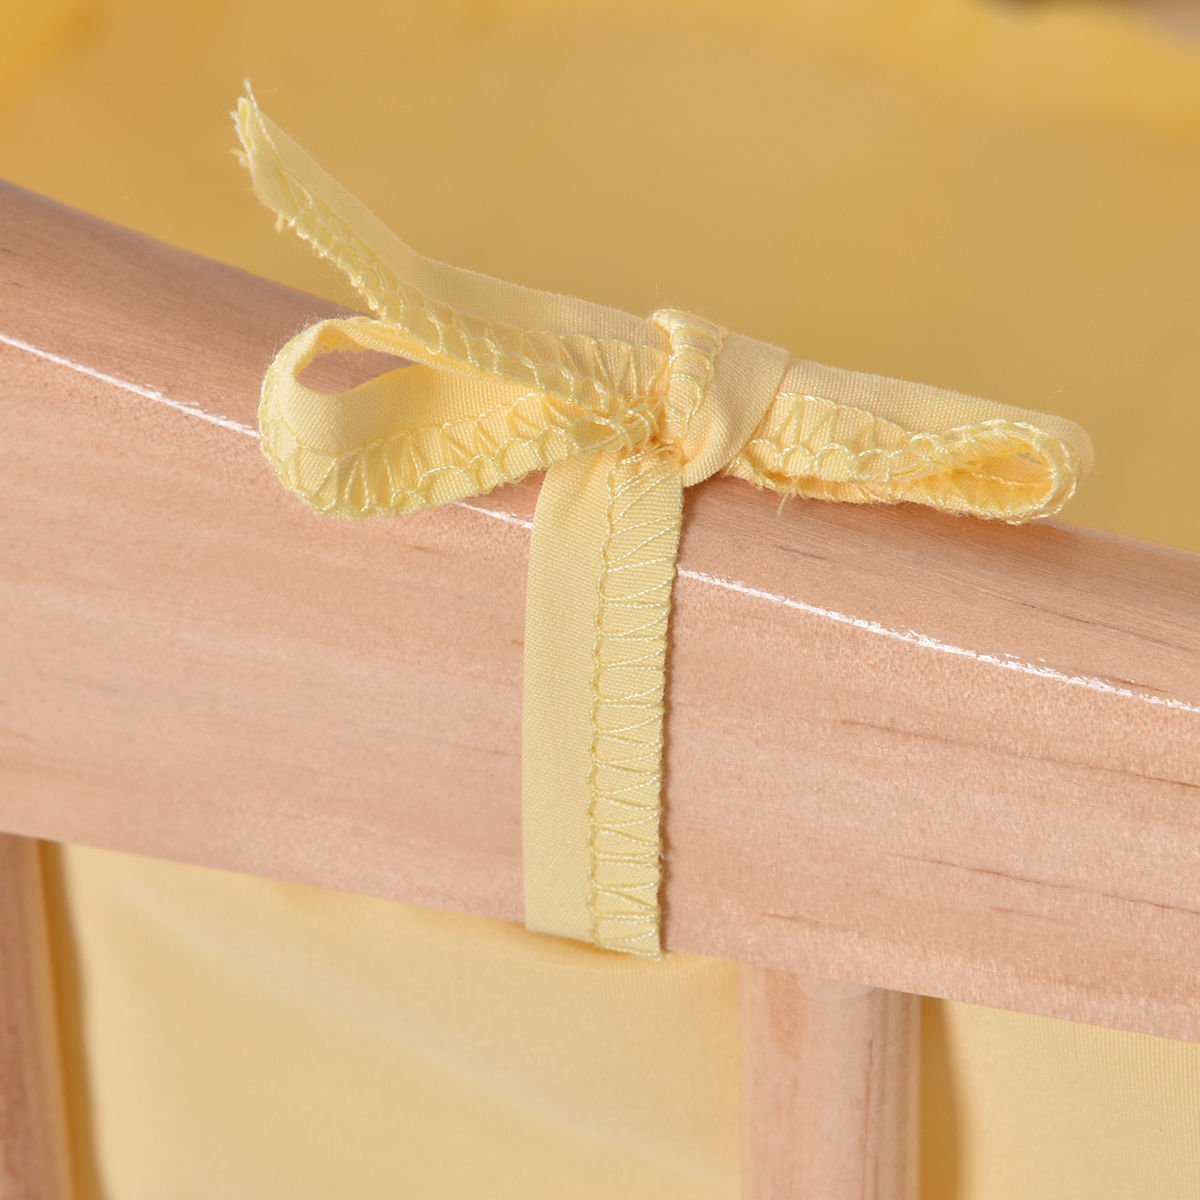 SKEMiDEX---Wood Baby Cradle Rocking Crib Bassinet Bed Sleeper Born Portable Nursery Yellow This Wooden Baby Cradle comes complete with everything your baby needs for sleep by SKEMiDEX (Image #7)